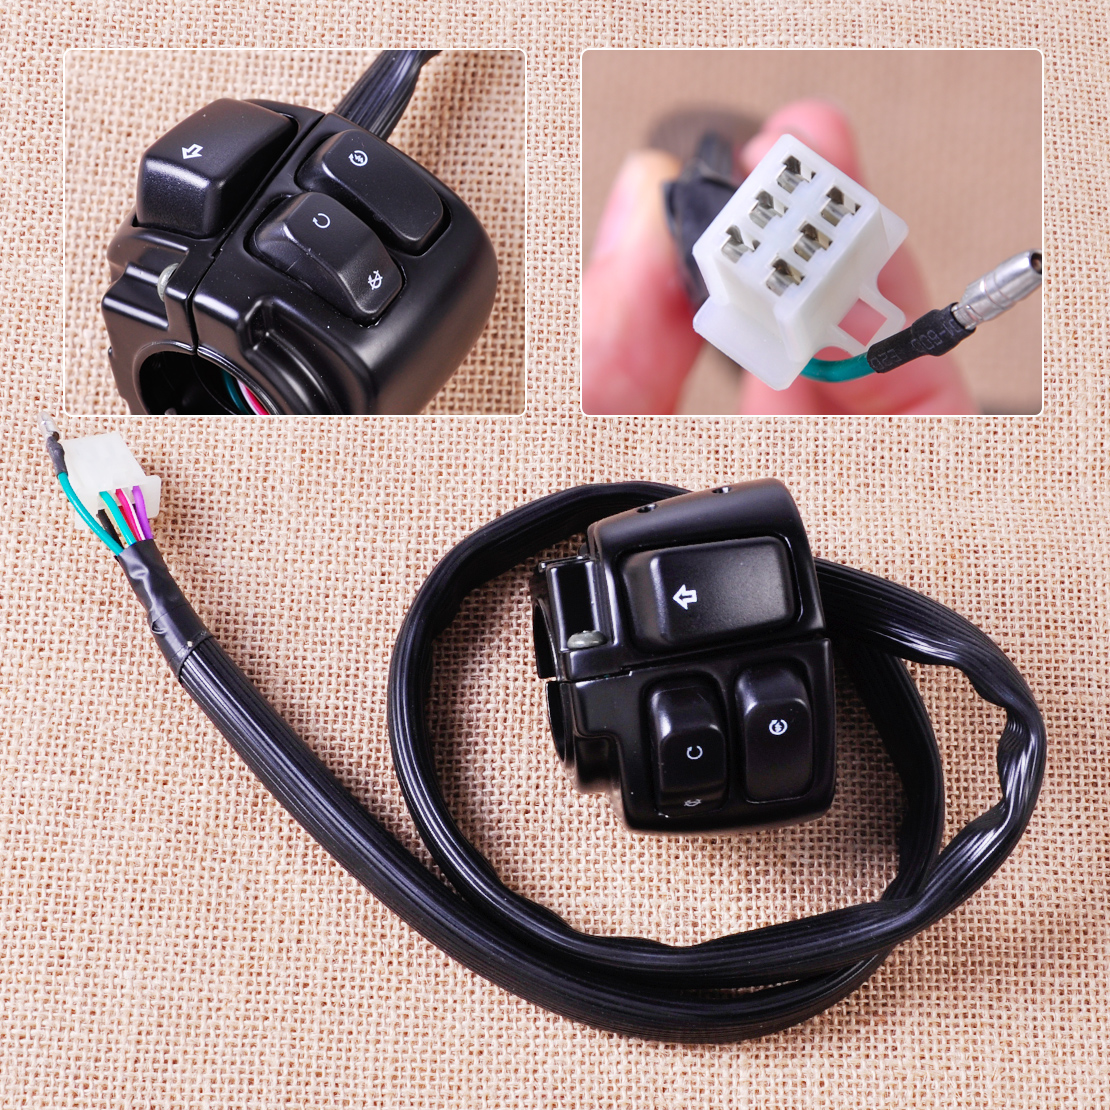 small resolution of citall motorcycle 1 handlebar ignition turn signal switch wiring harness for harley softail dyna sportster 1200 883 v rod in motorcycle switches from